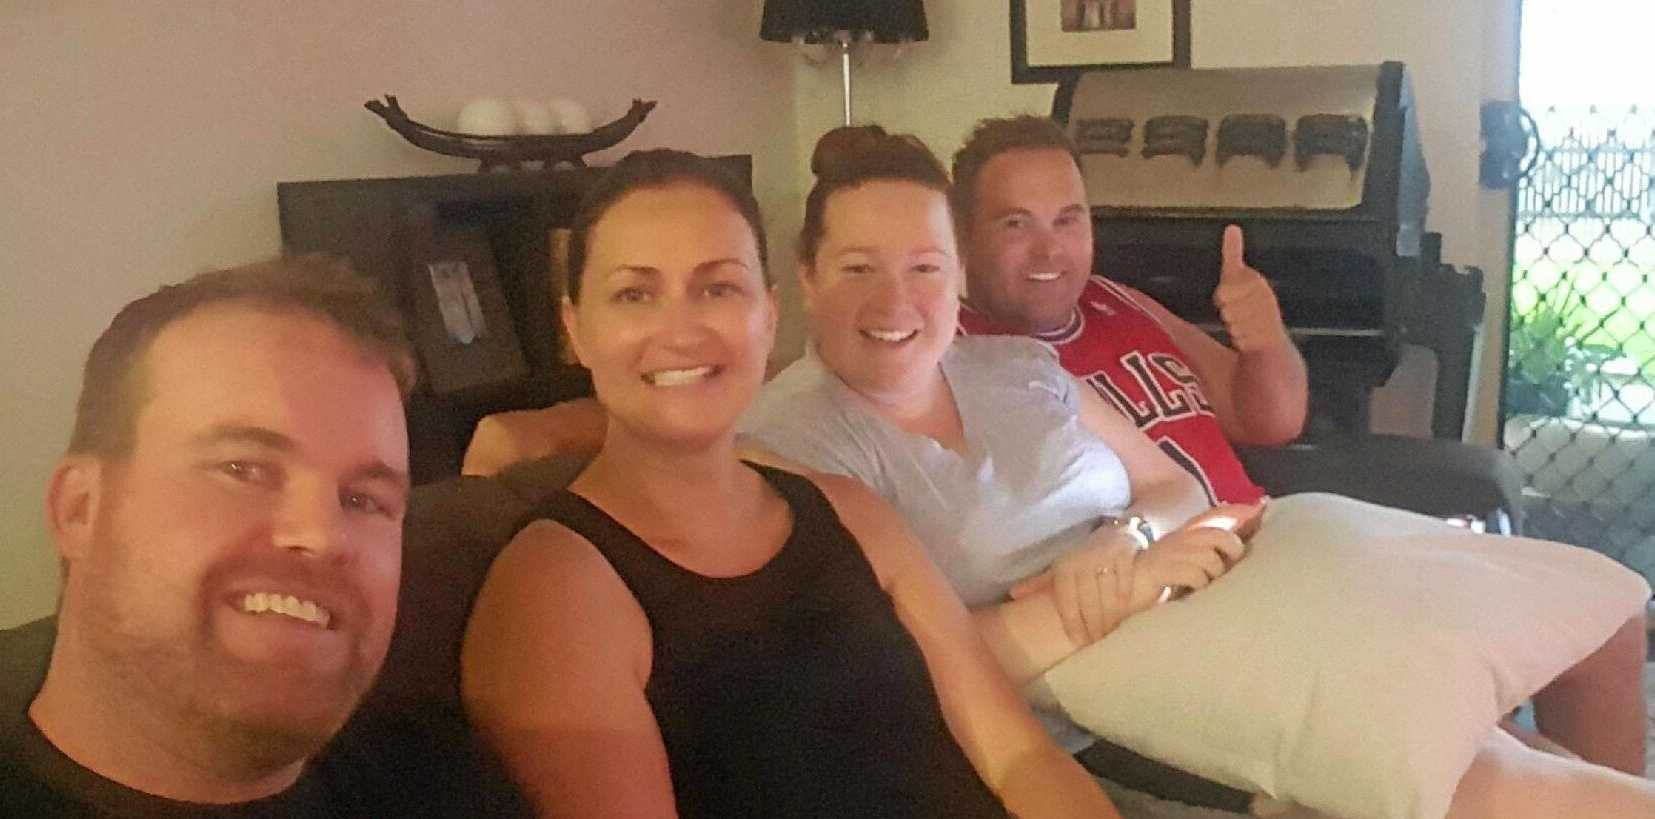 Paul and Nicole Scullie bunkered down during Cyclone Debbie with friends Liz Gray and Mat Christie who were visiting from Bendigo.